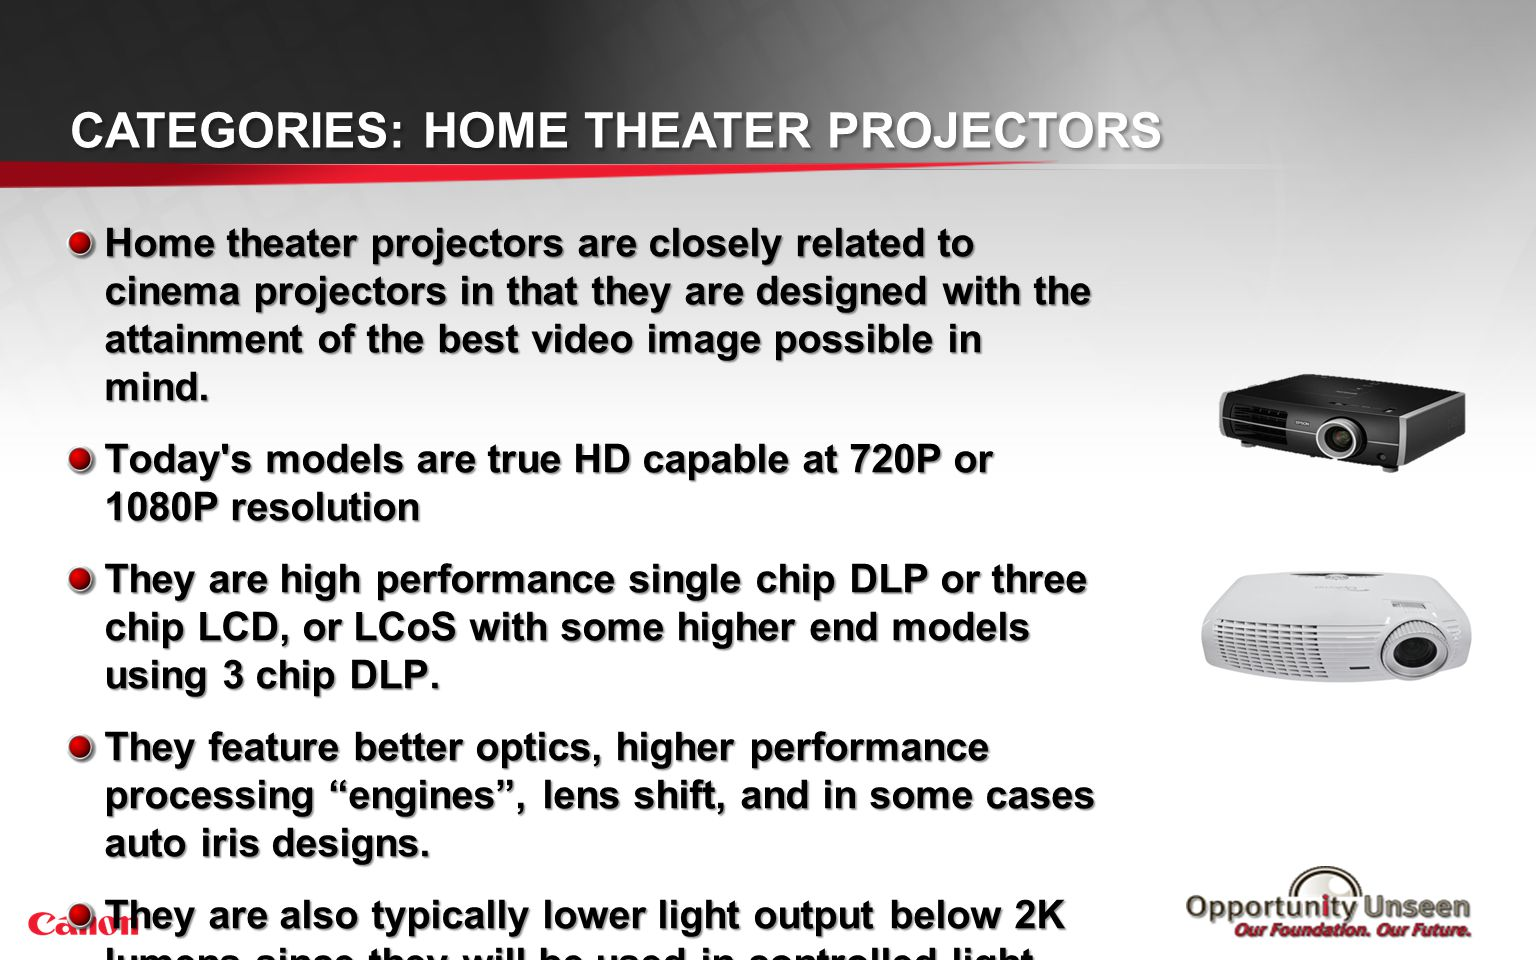 CATEGORIES: HOME THEATER PROJECTORS Home theater projectors are closely related to cinema projectors in that they are designed with the attainment of